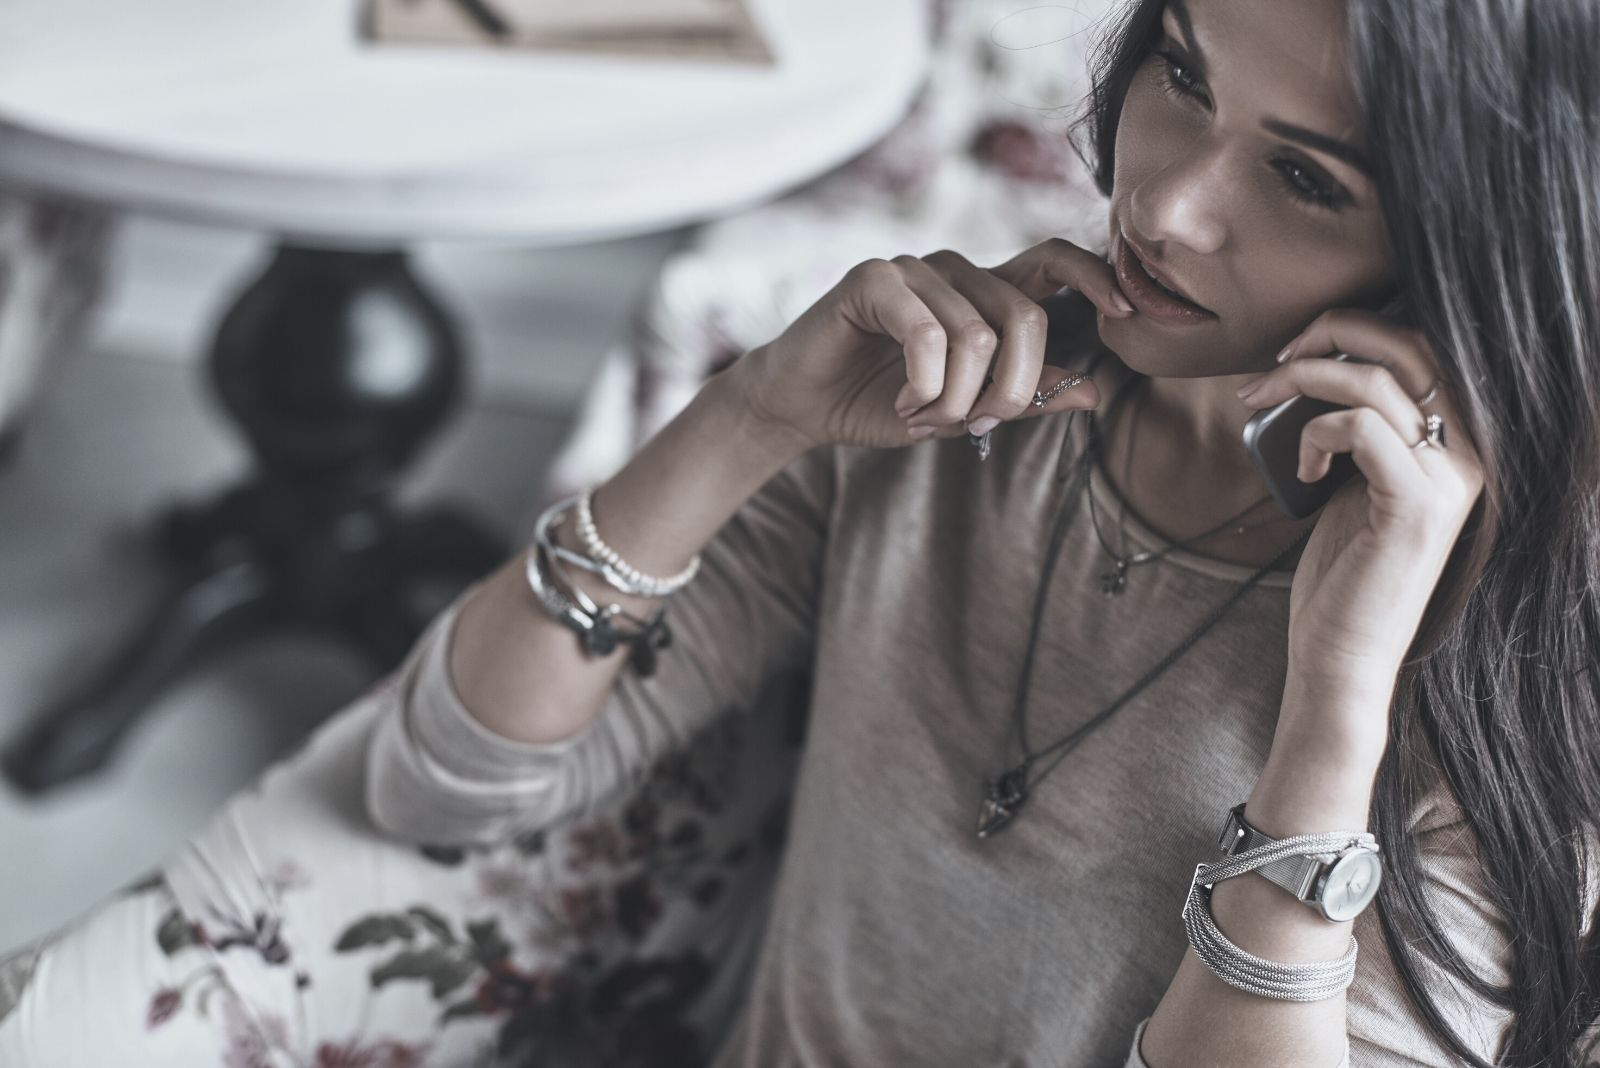 beautiful young woman touching her chin while talking on the the phone sitting on a couch indoors